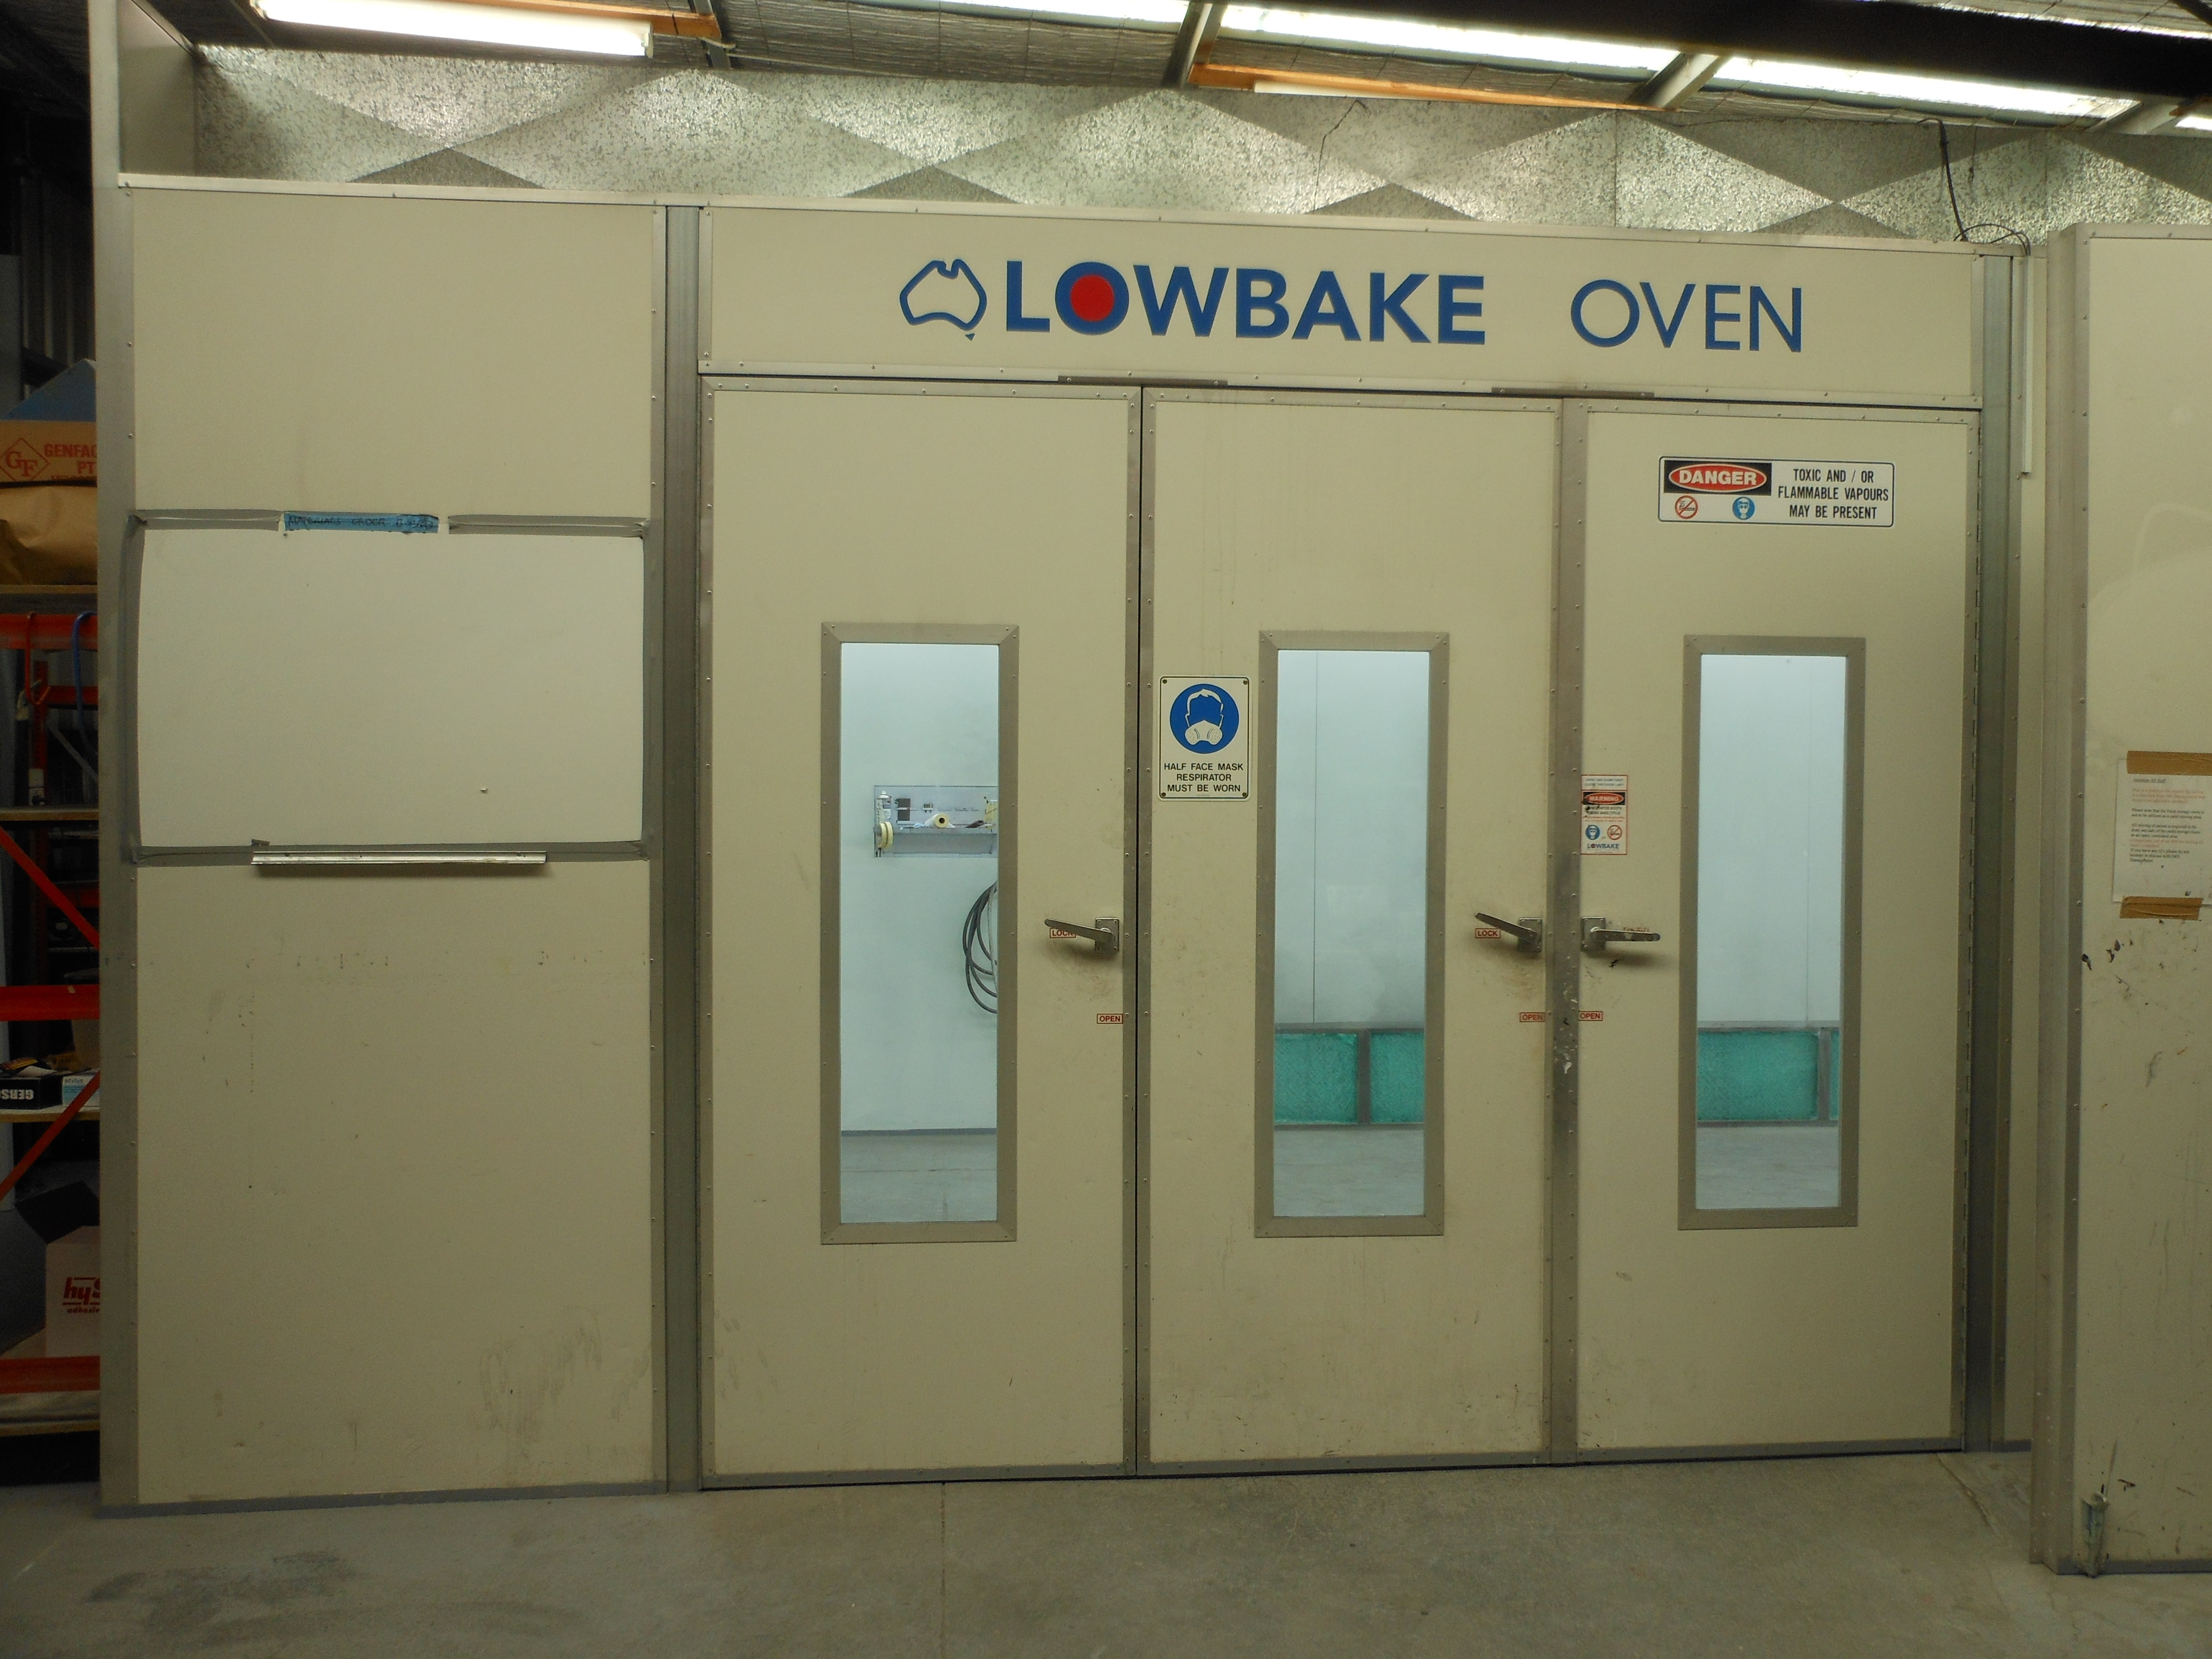 Specialised batch ovens for curing large items up to 5.2m x 2.2m